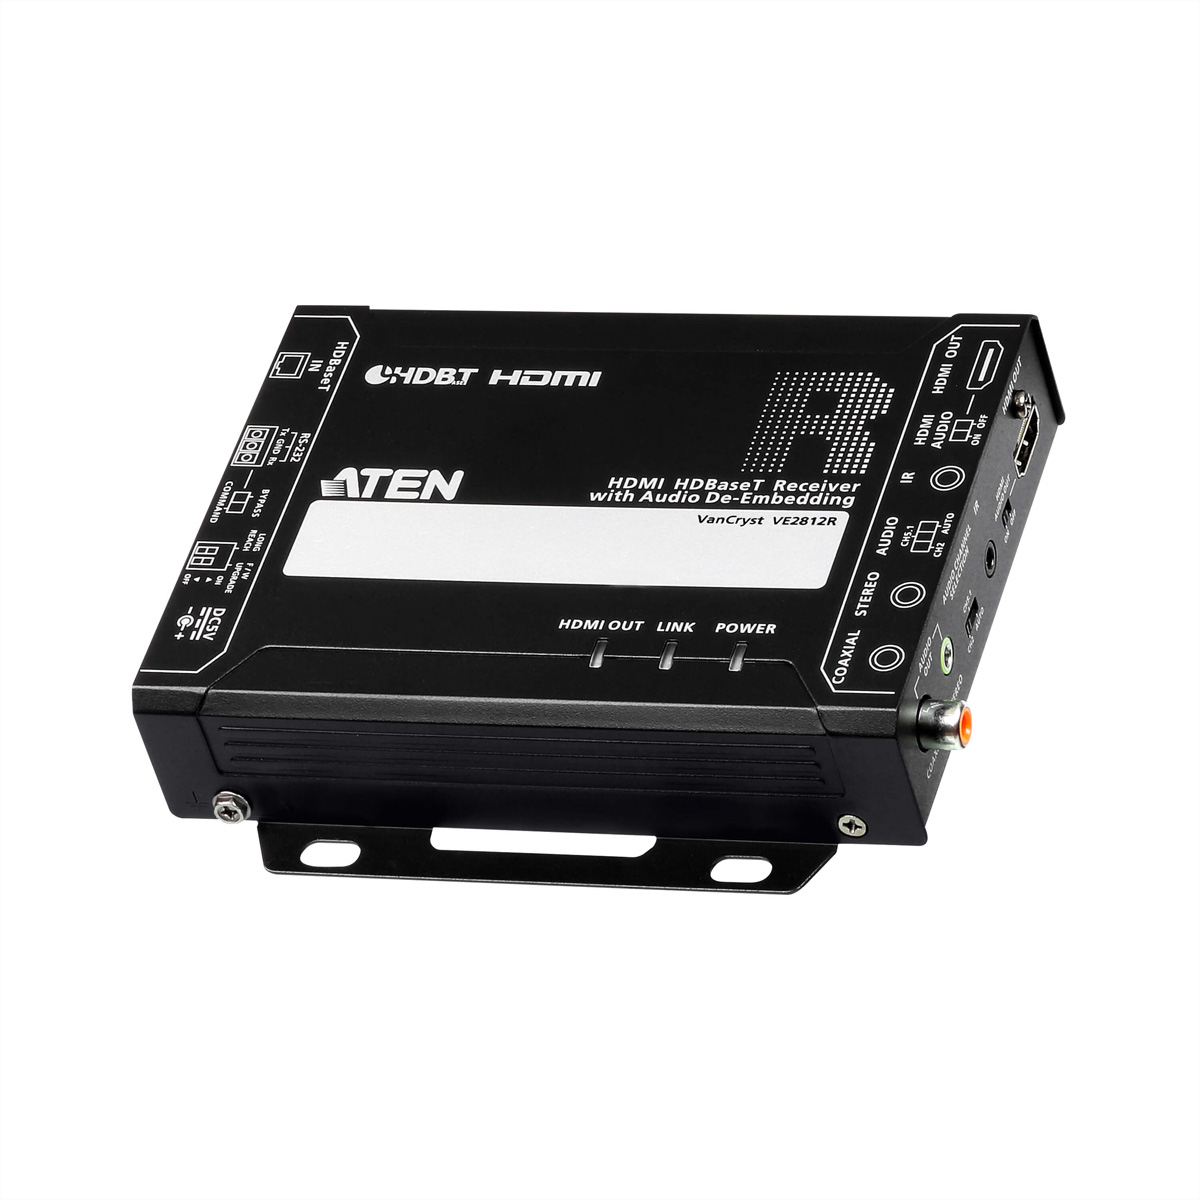 ATEN VE2812R HDMI HDBaseT Receiver